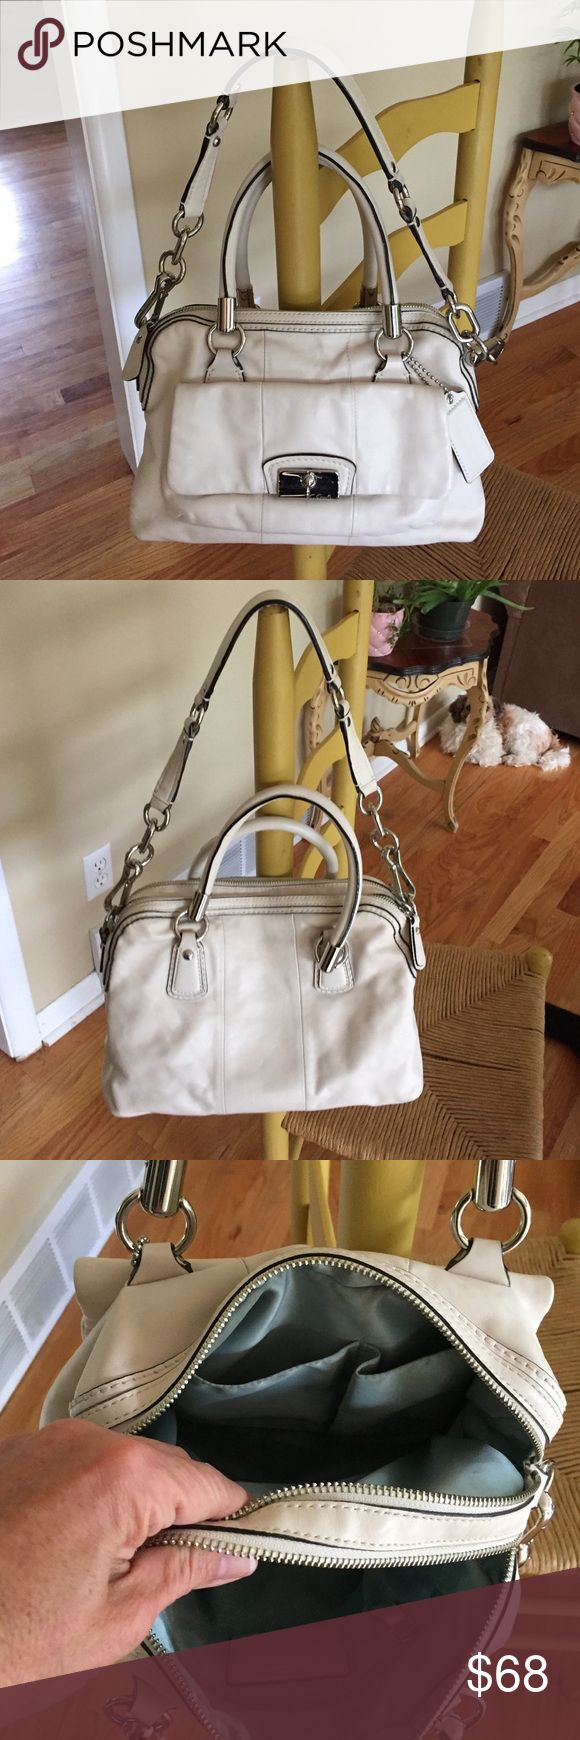 Coach Bags - FLASHSALE Authentic Coach Kristin Convertible Bag